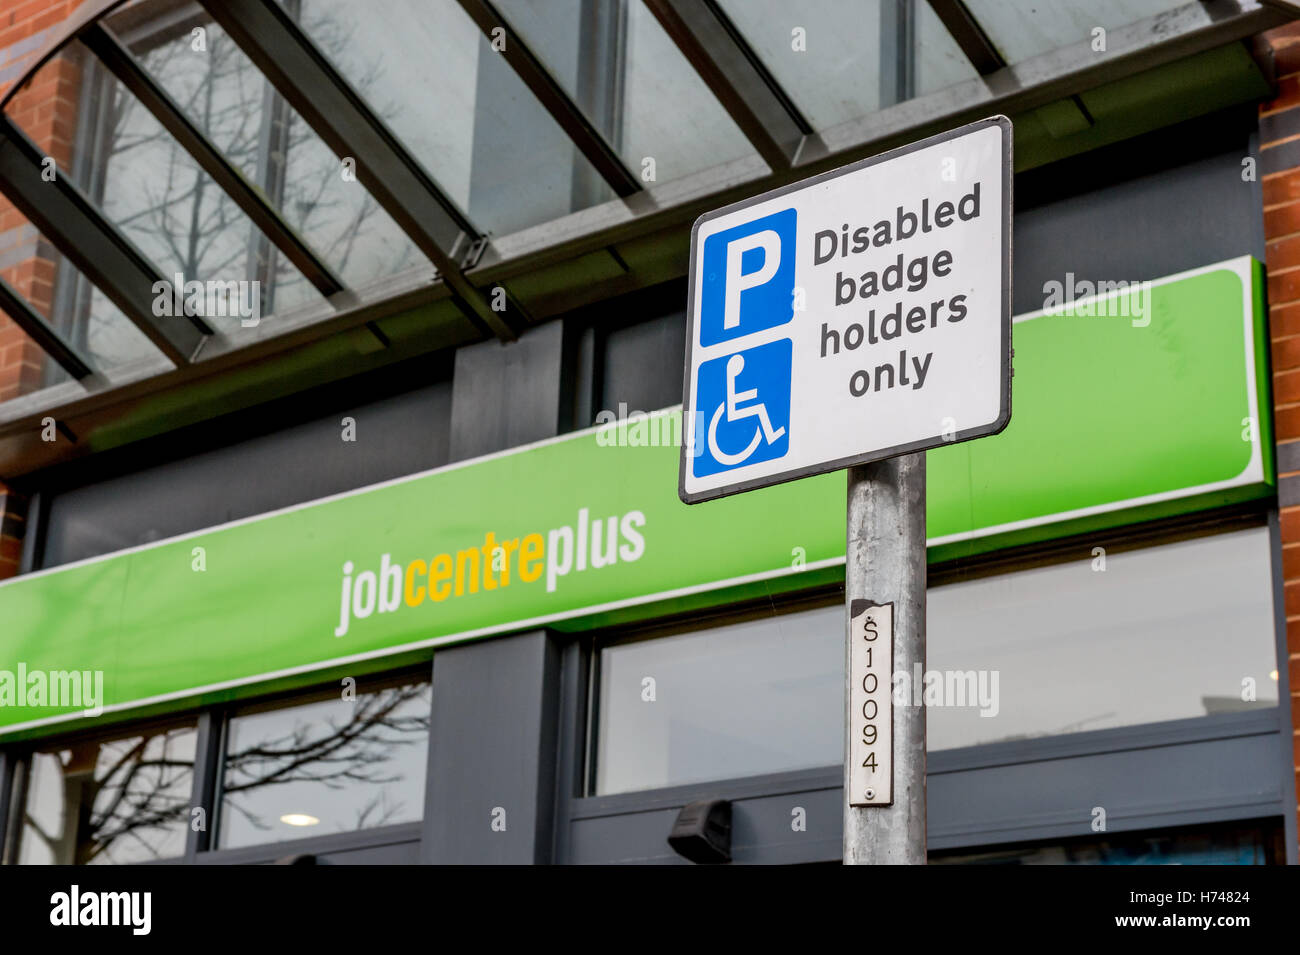 Disabled badge holder sign in front of Job Centre Plus Office, Doncaster - Stock Image